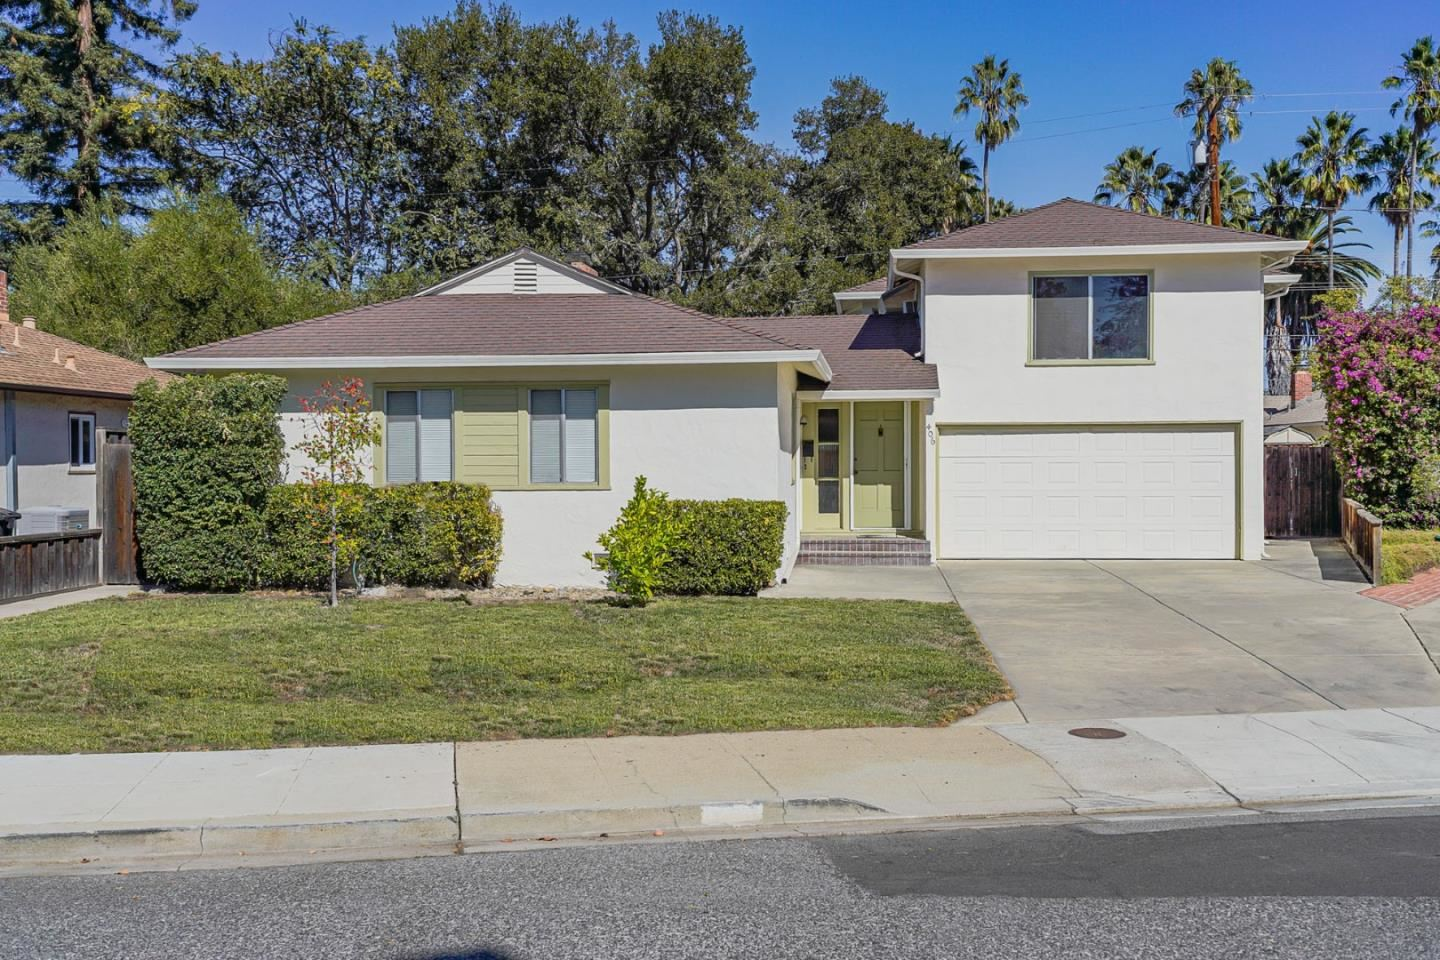 Photo for 406 Sierra AVE, MOUNTAIN VIEW, CA 94041 (MLS # ML81816115)